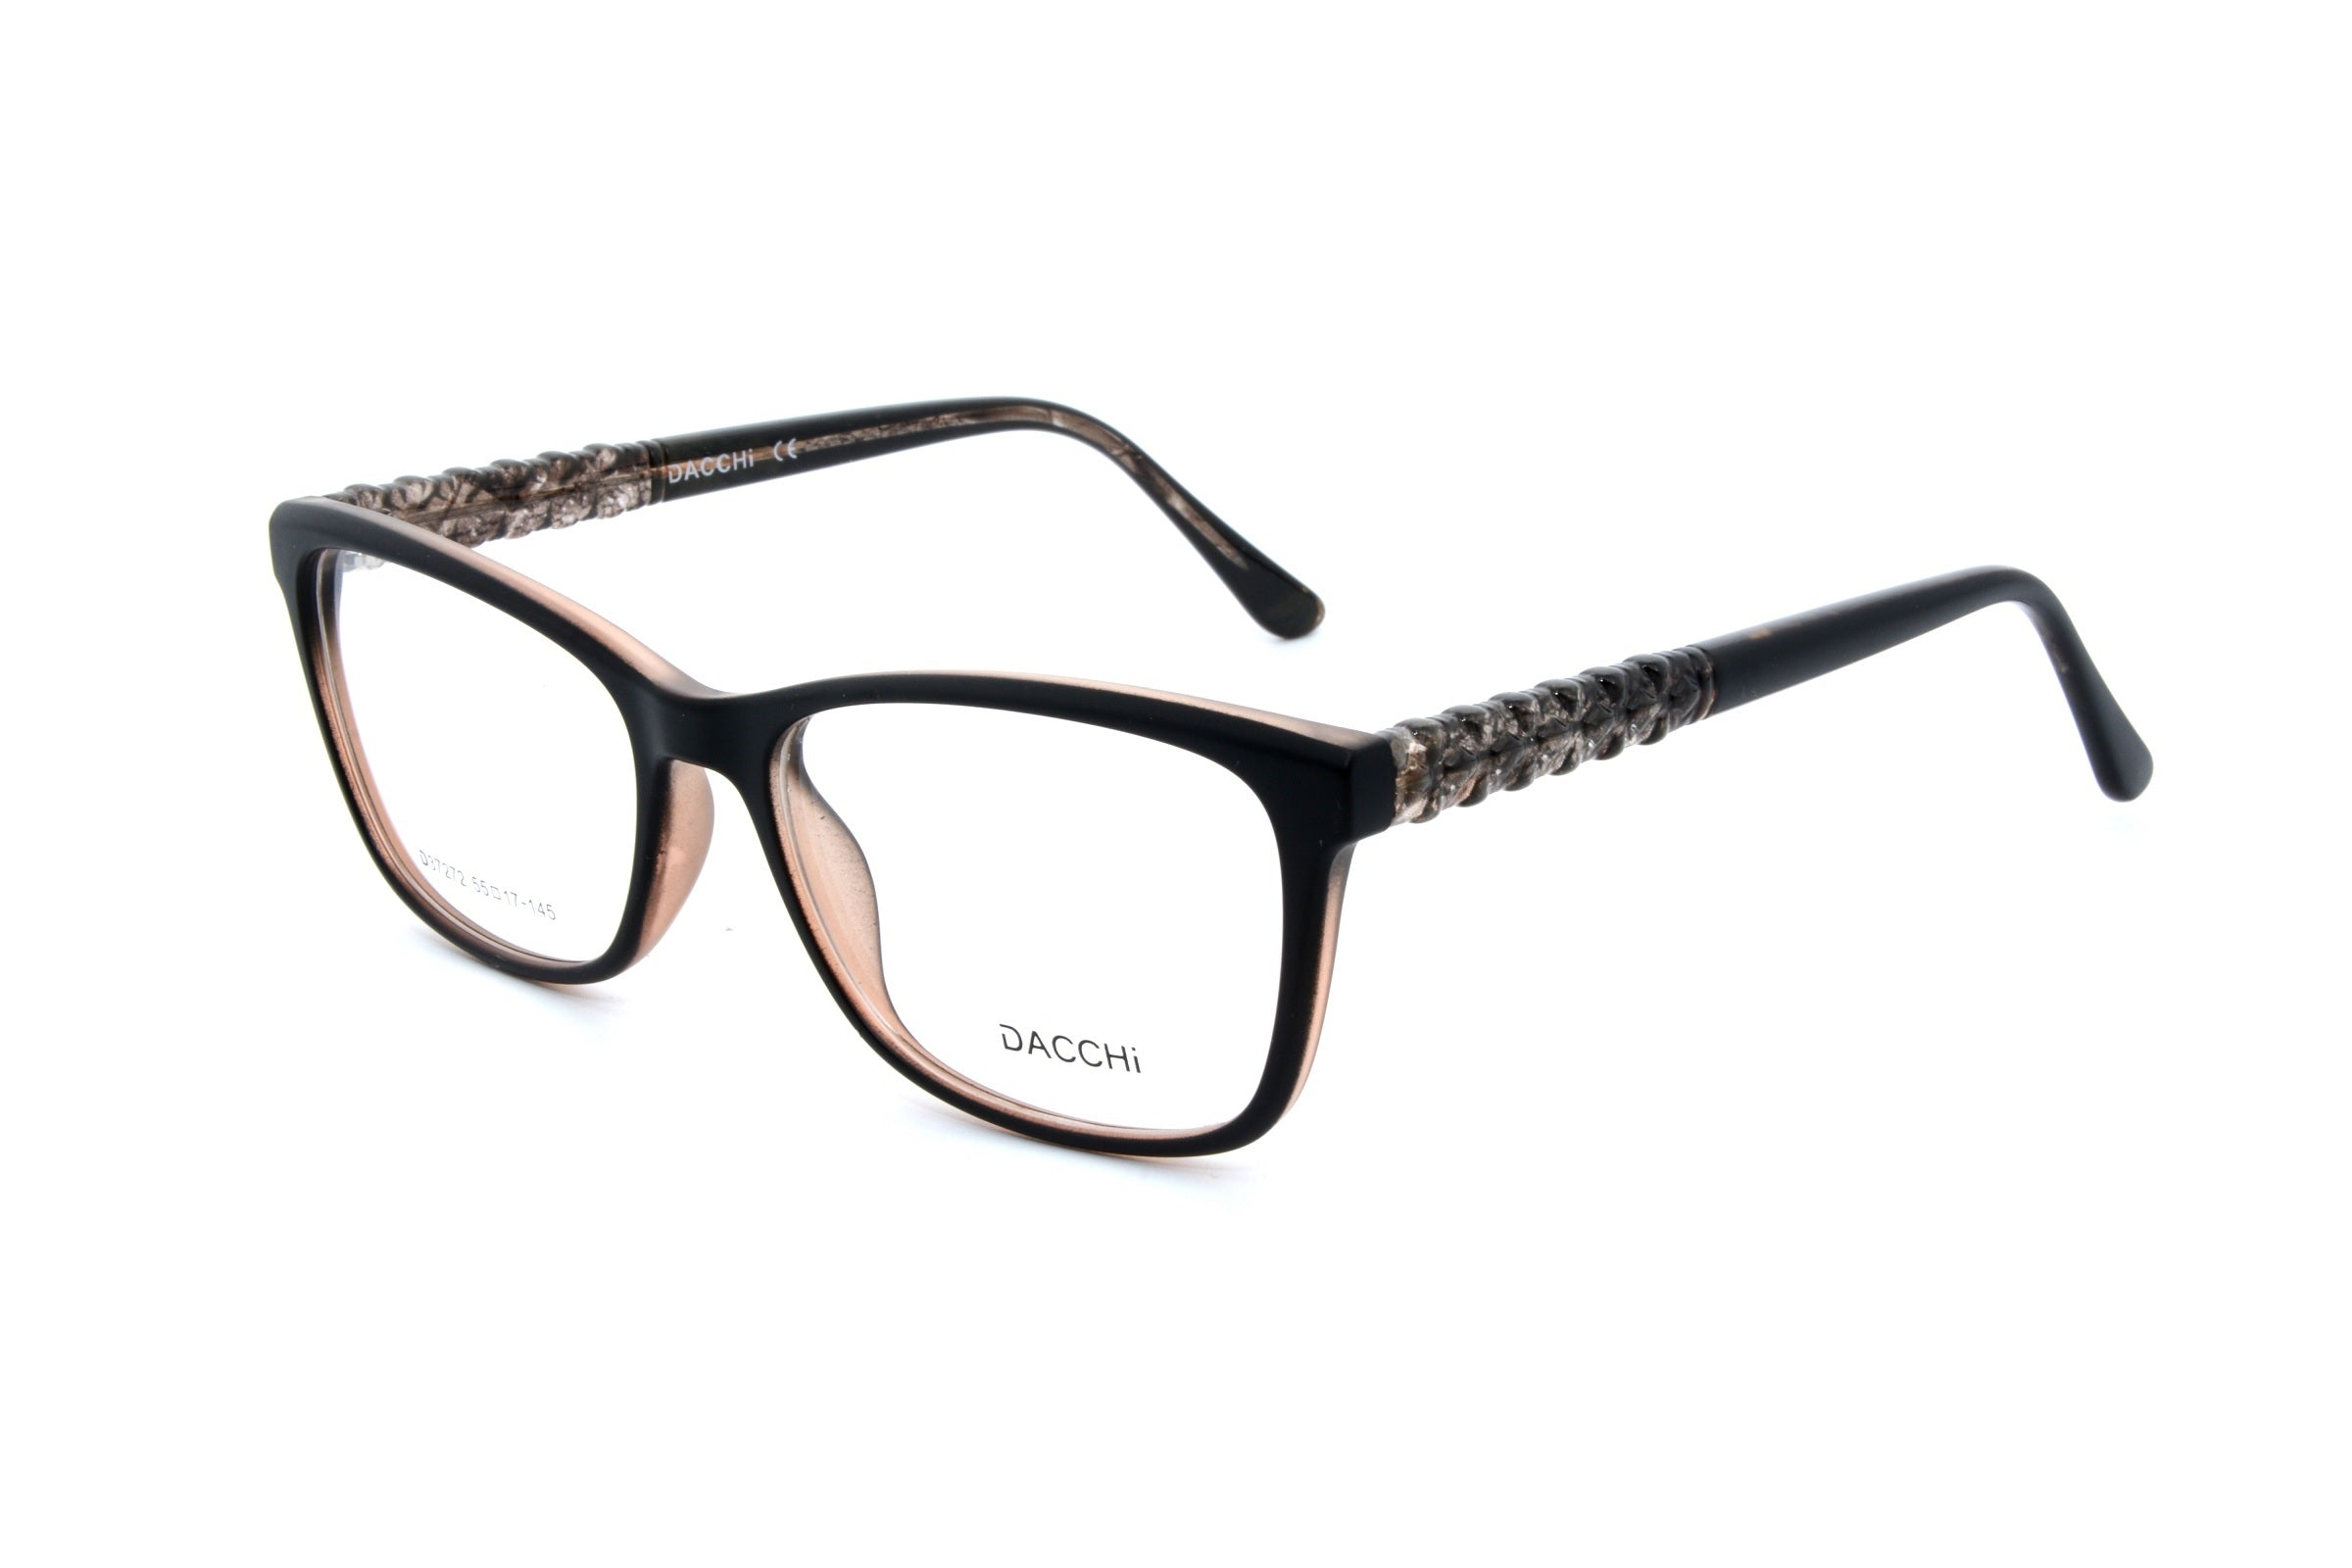 Dacchi eyewear 37272, C2 - Optics Trading